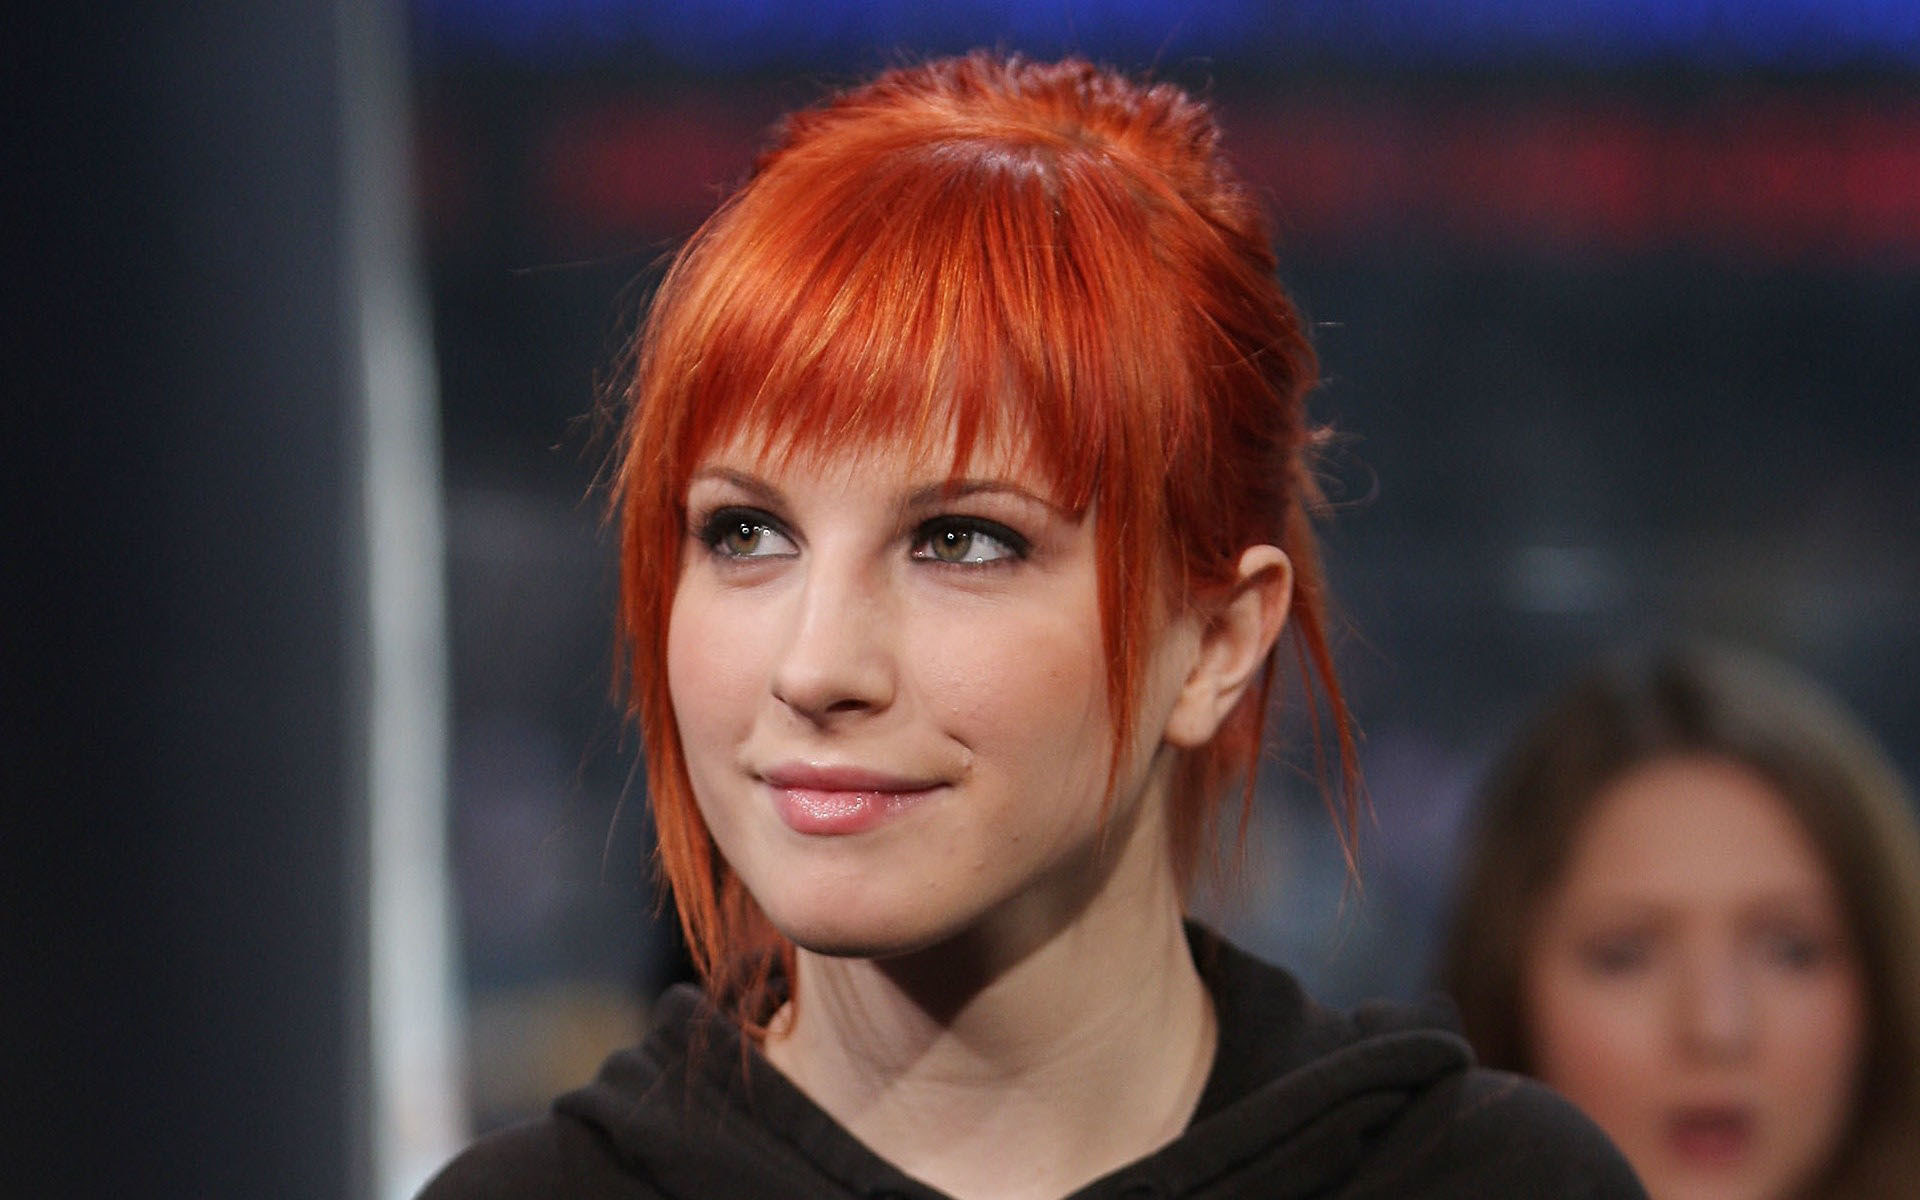 hayley-williams-celebrity-hd-wallpaper-1920x1200-5811